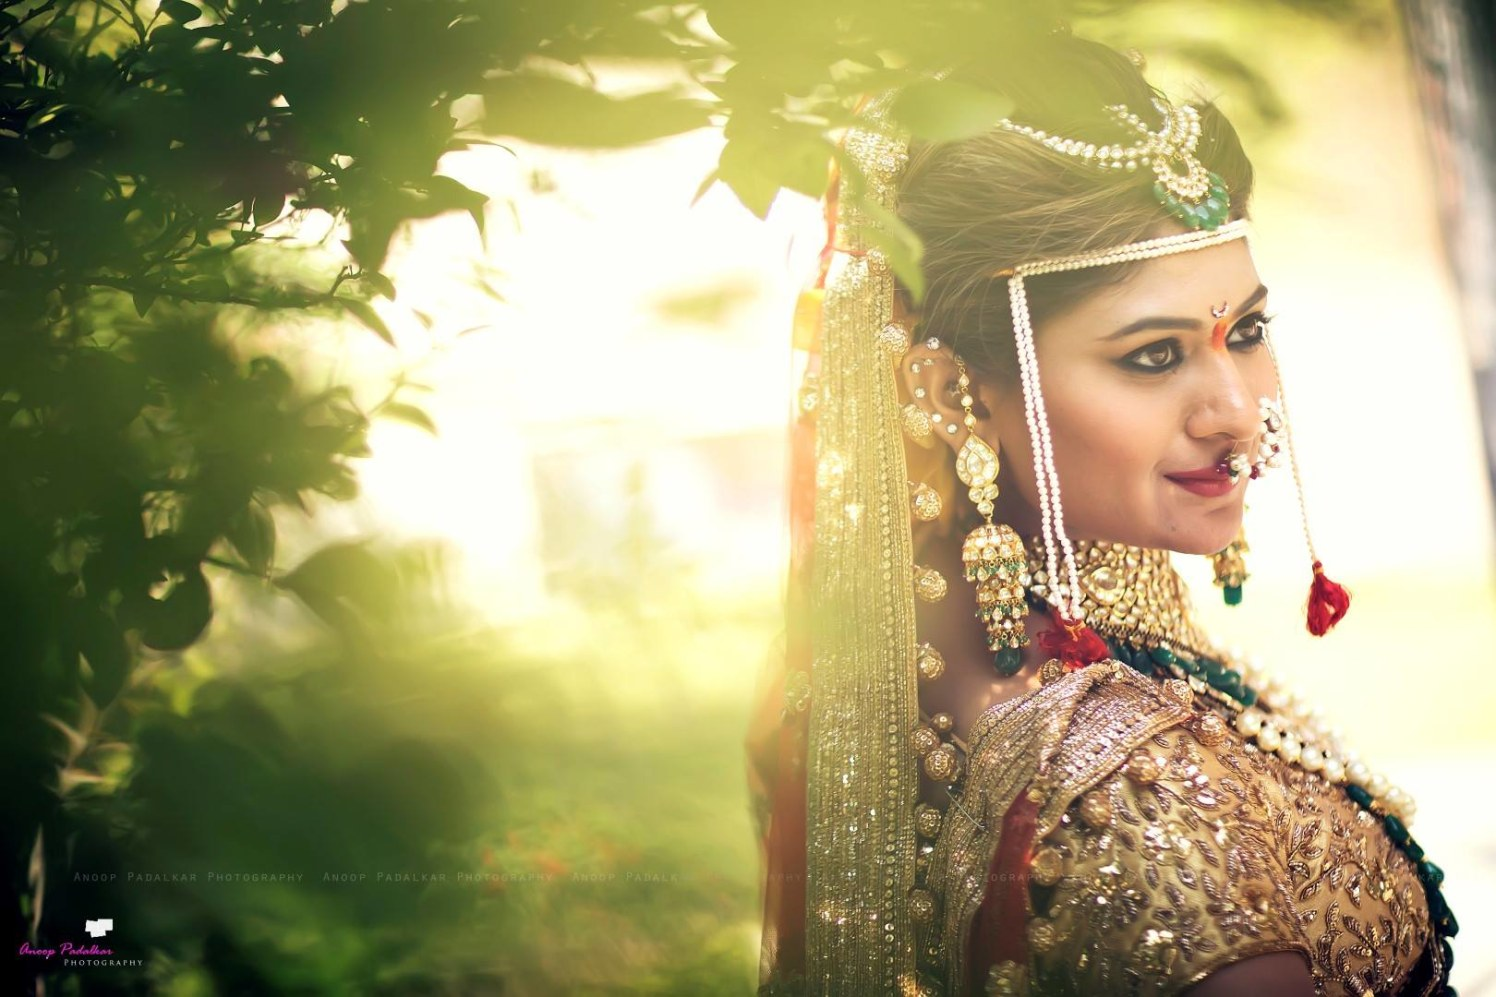 Pleasing features by Wedding Krafter Wedding-photography | Weddings Photos & Ideas